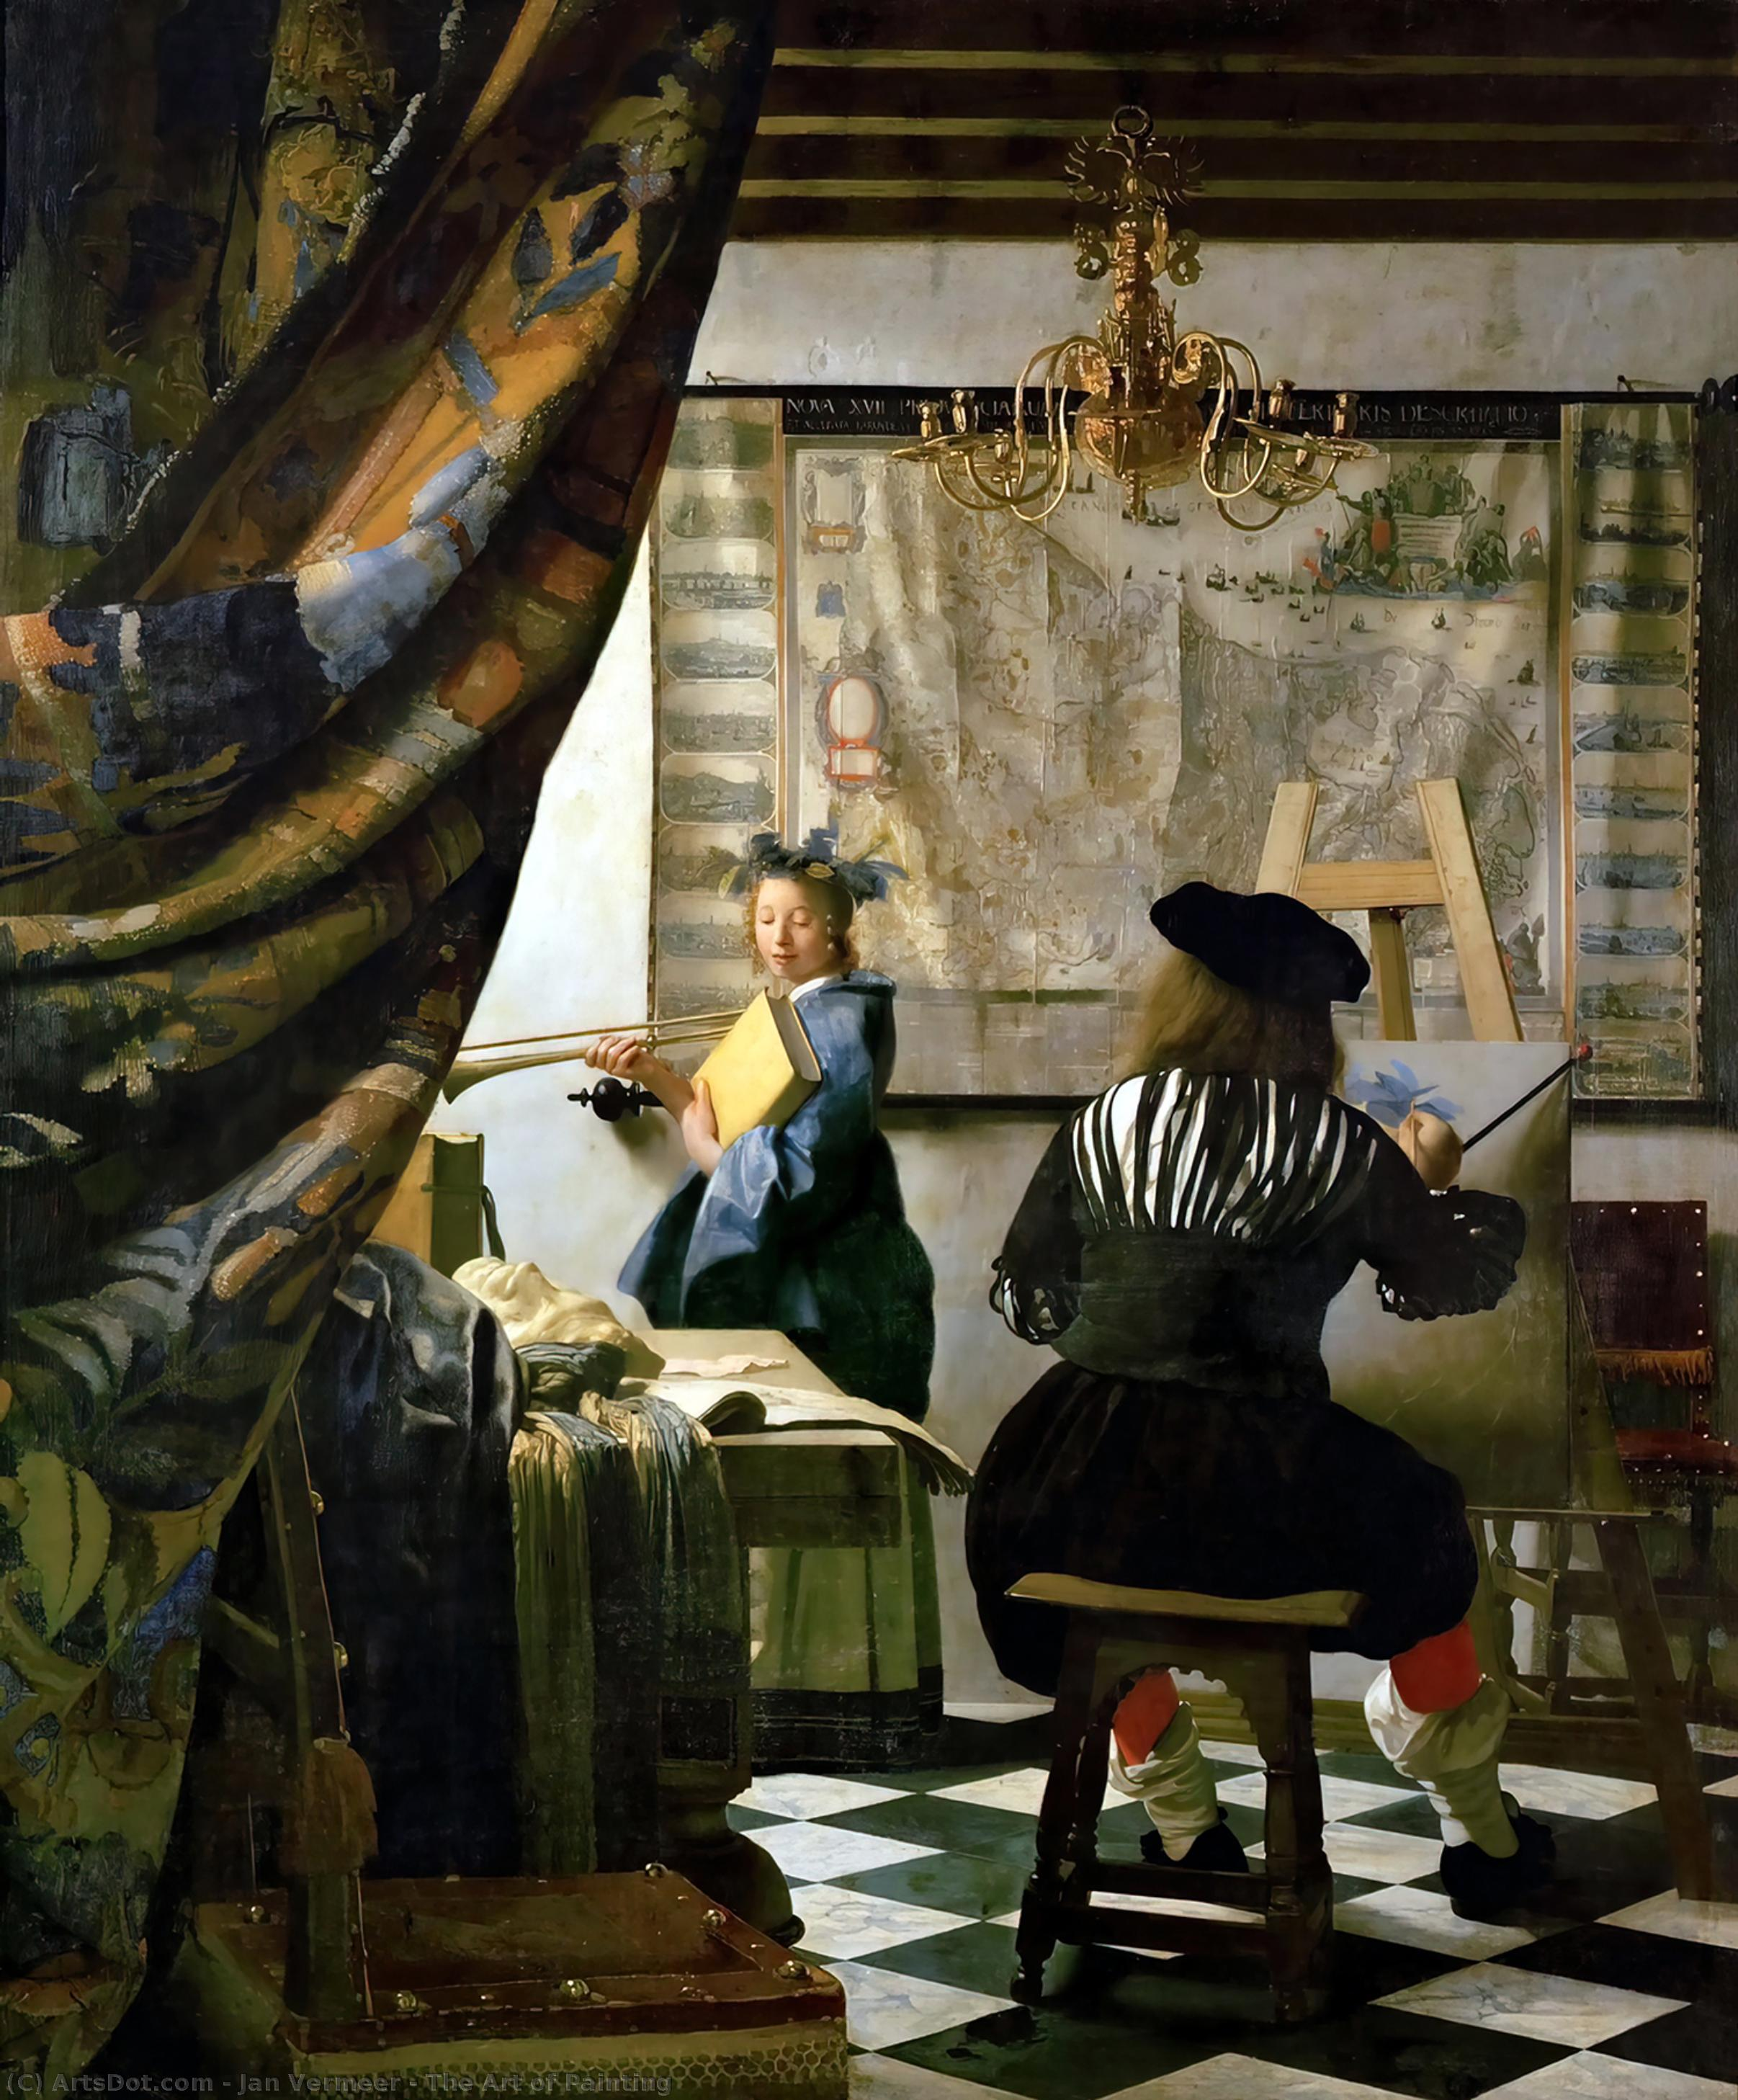 WikiOO.org - Enciclopedia of Fine Arts - Pictura, lucrări de artă Jan Vermeer - The Art of Painting